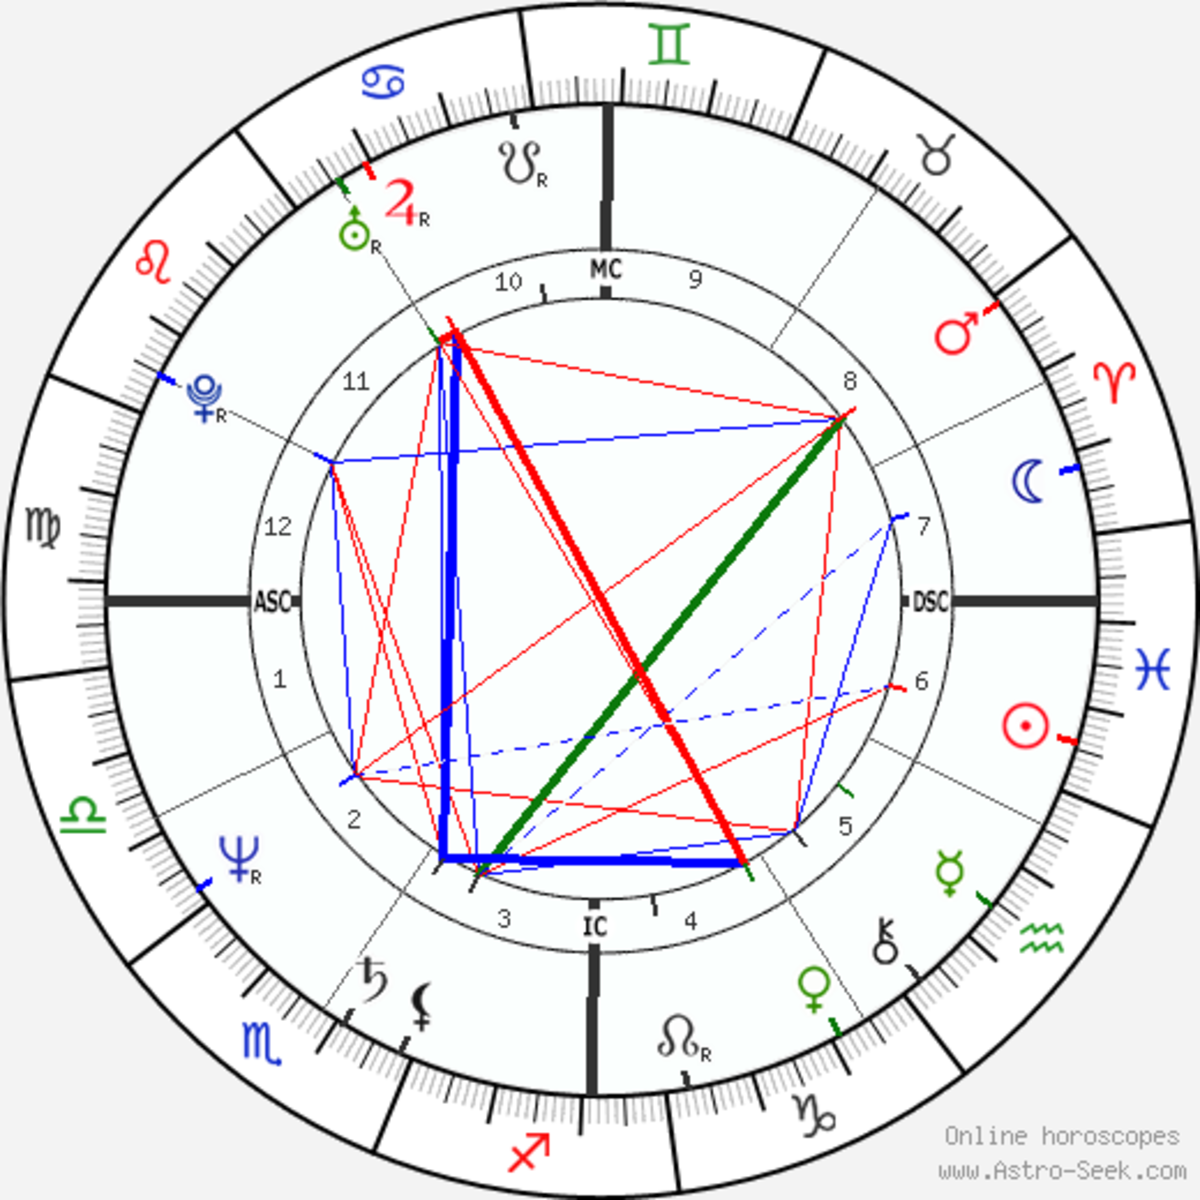 Yes, an interpretation comes with it! Charts are complex, but online natal-horoscope generators make simple and truthful readings, instantly and free, thanks to computers. Want more? Find a human astrologer.